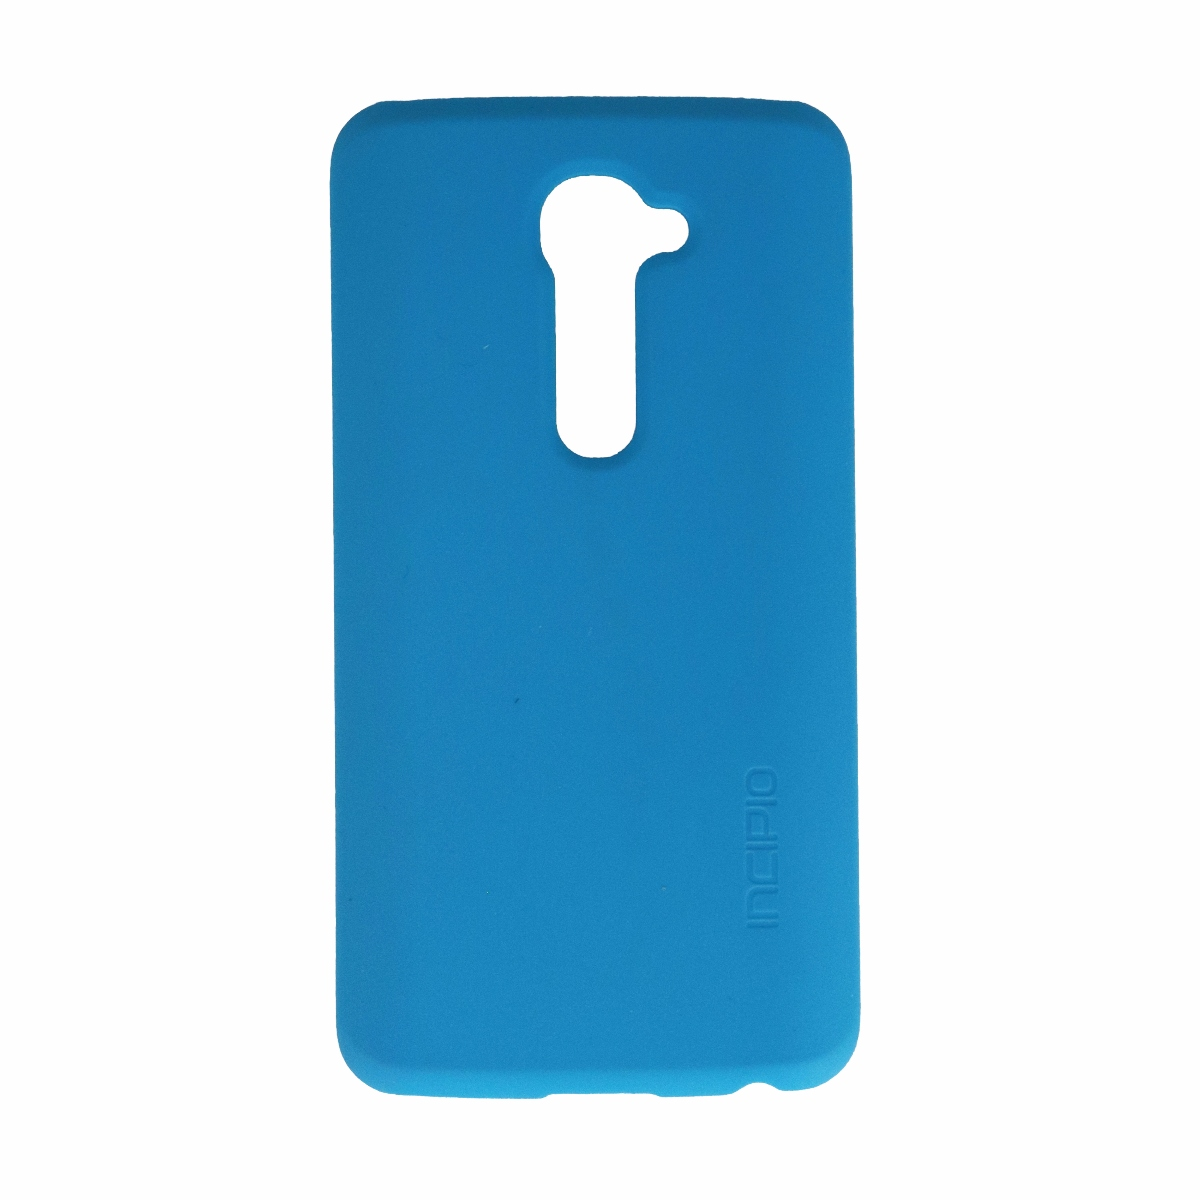 Incipio Feather Case for LG G2 (Verizon) - Carrying Case - LGE-214-CYN - Cyan